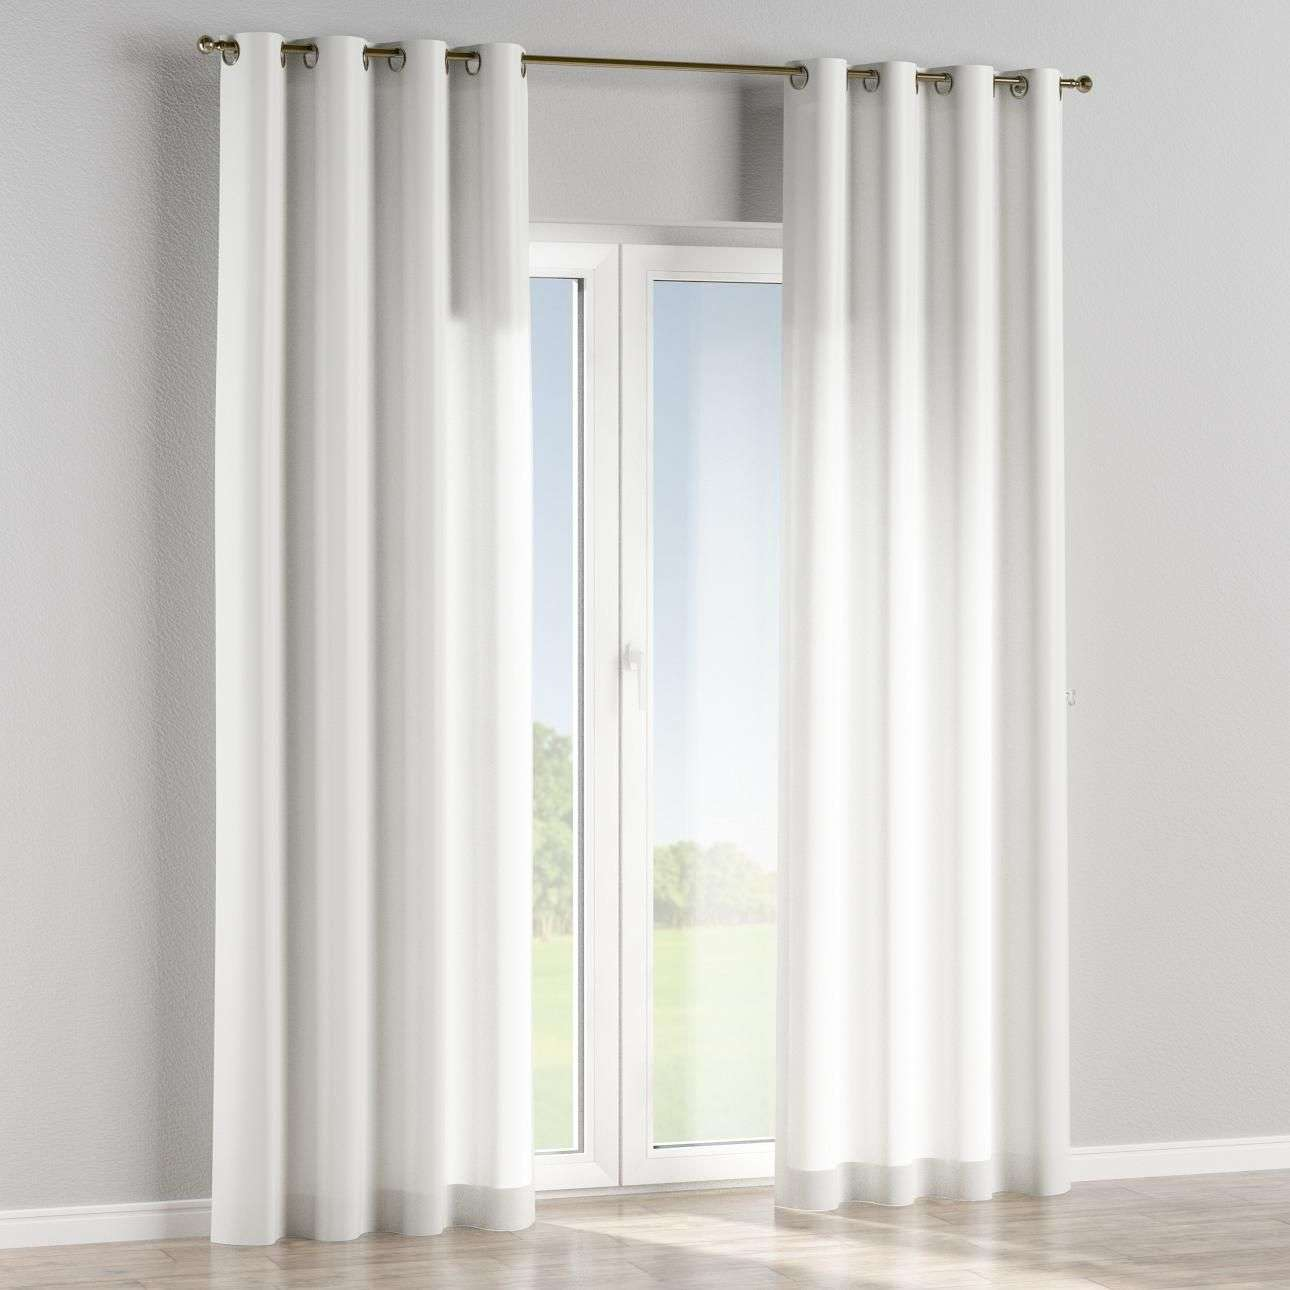 Eyelet curtains in collection SALE, fabric: 141-08